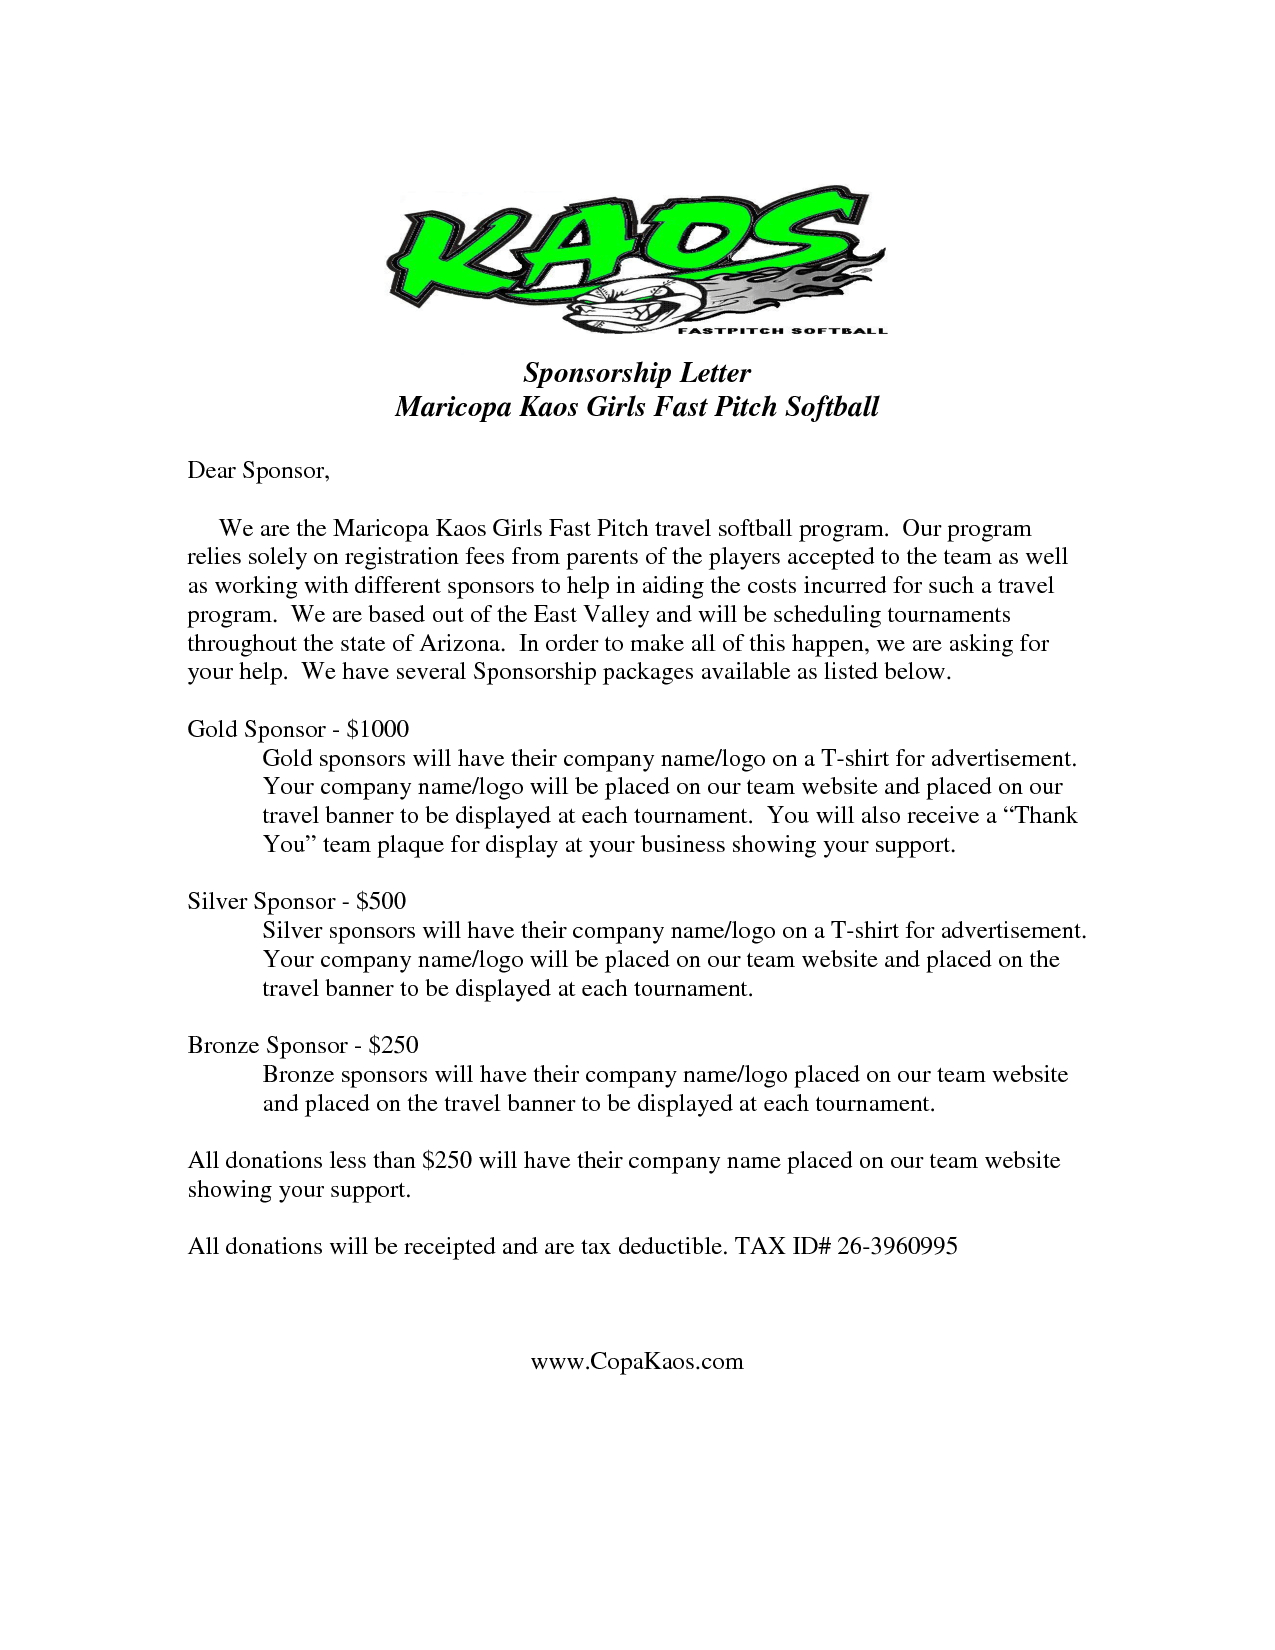 golf tournament sponsorship letter template example-Image result for sample sponsor request letter donation 19-c